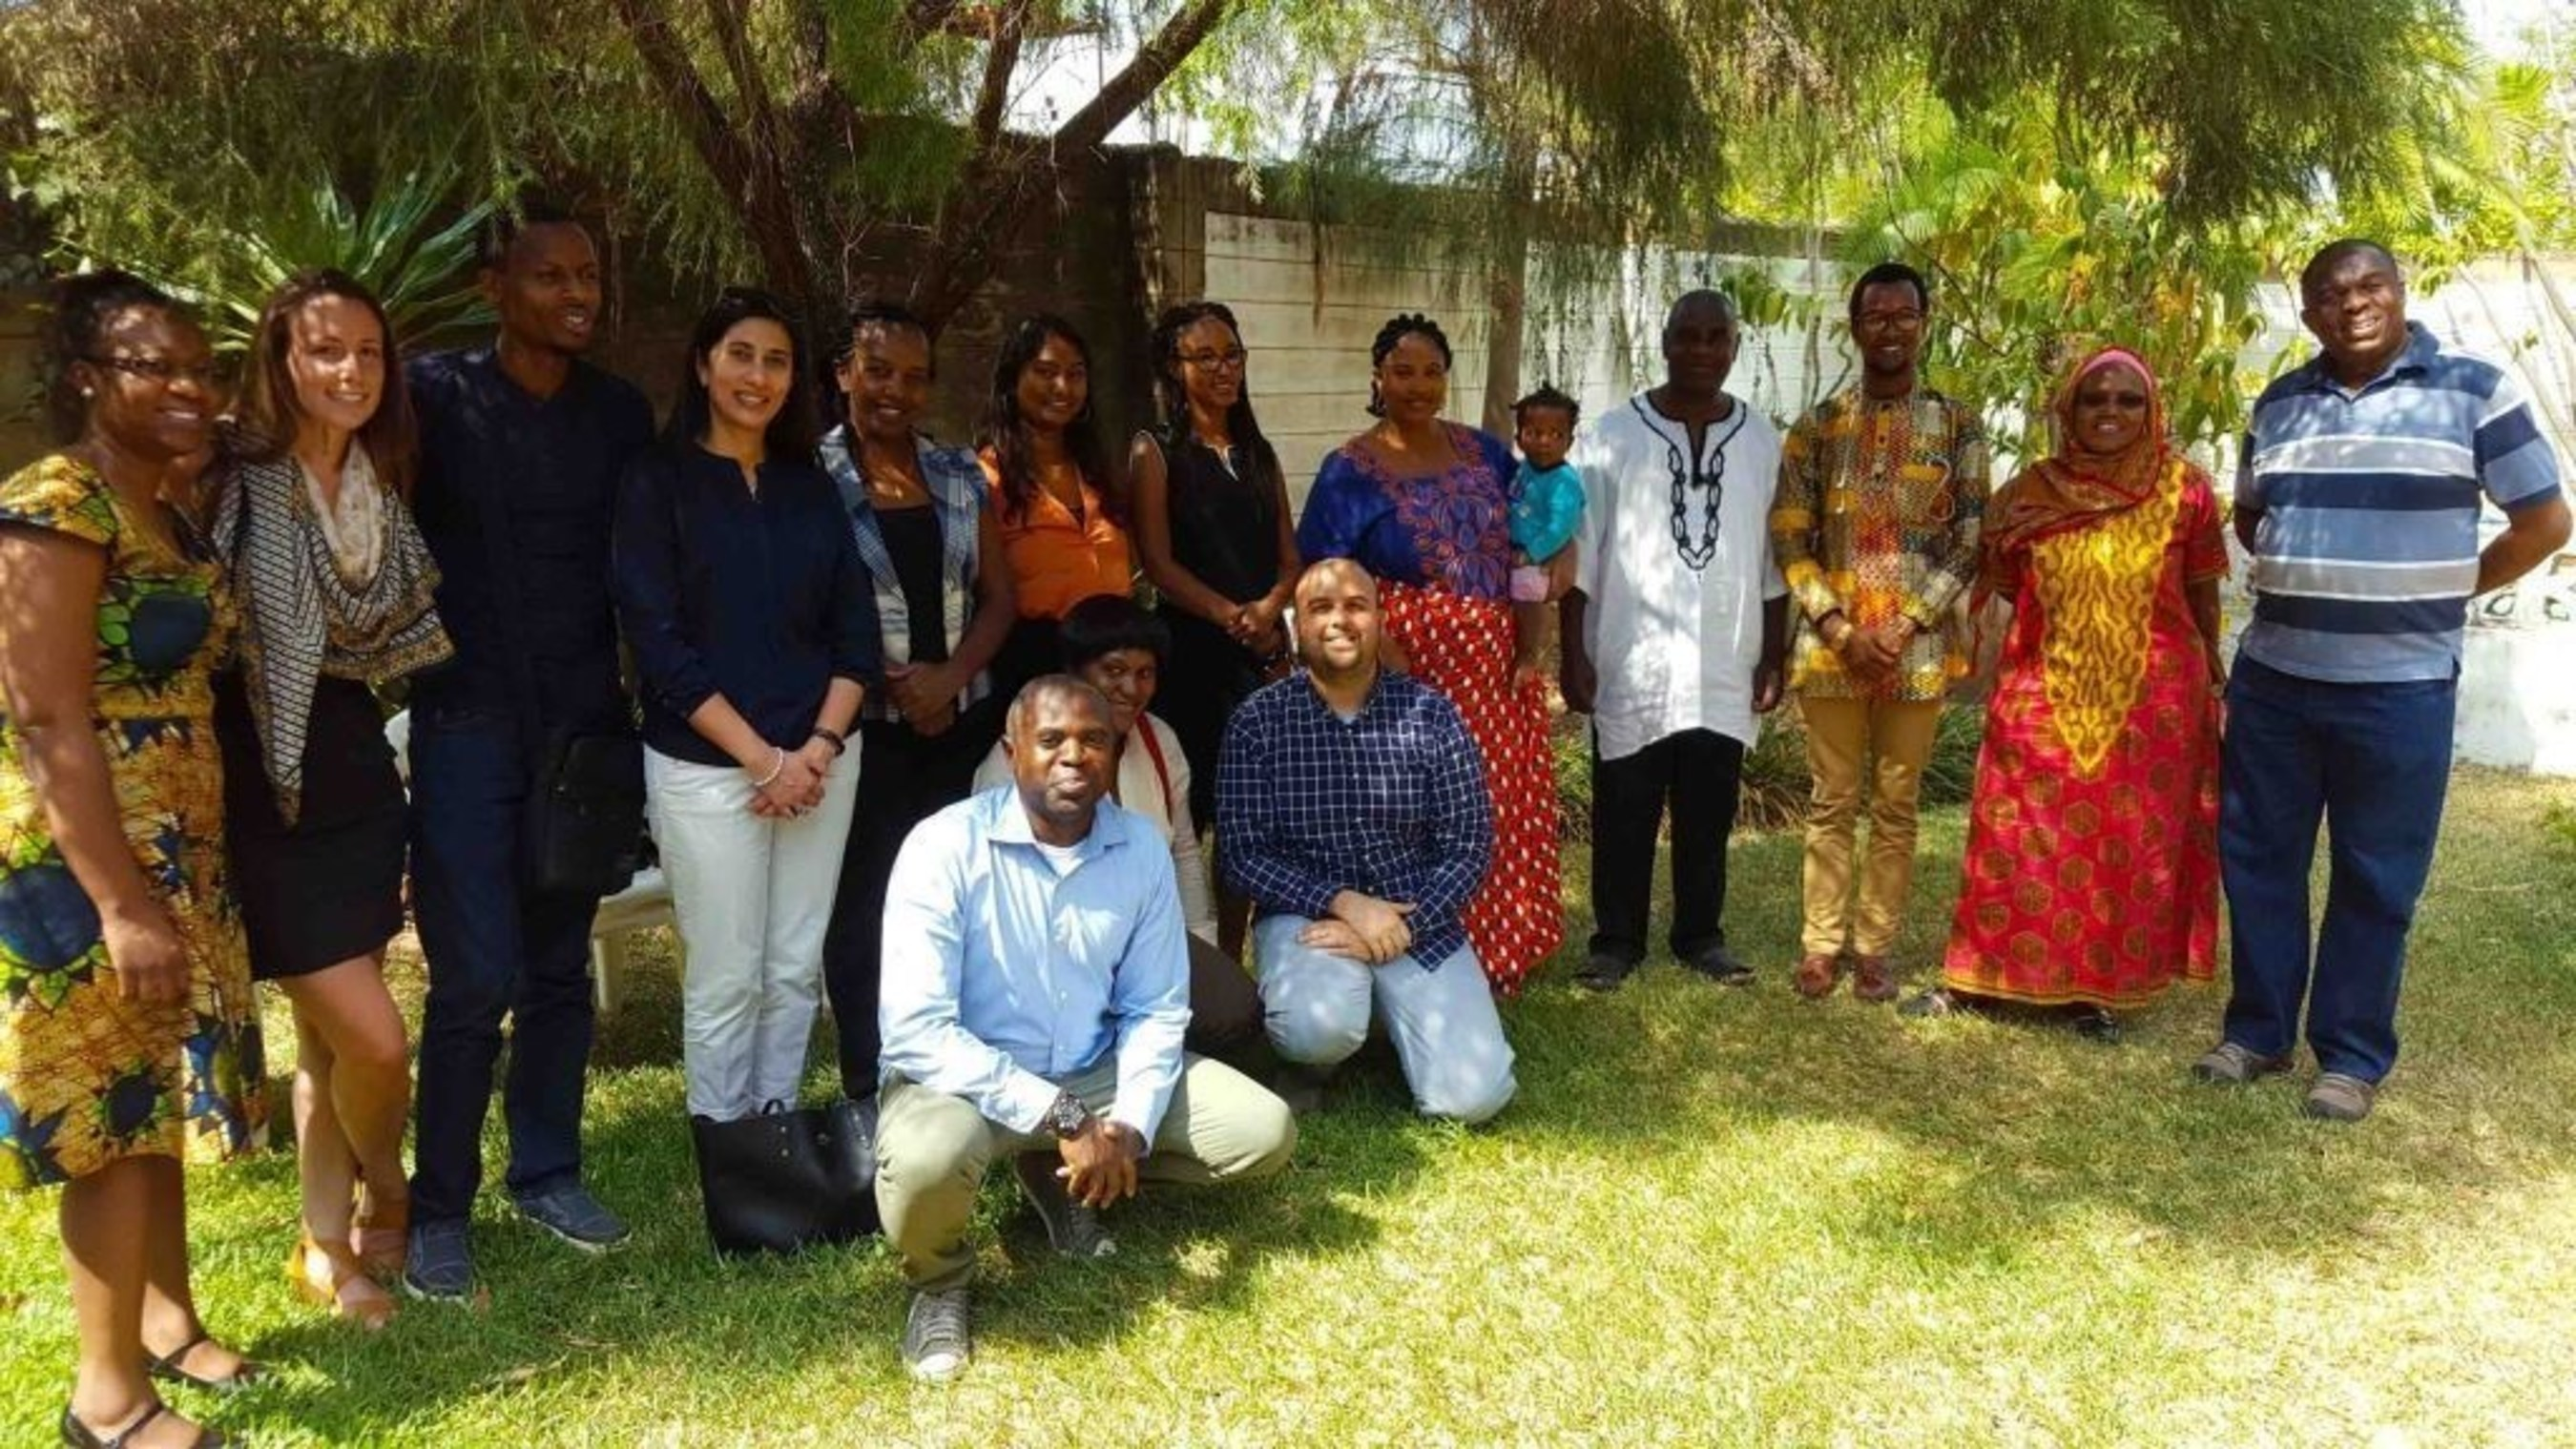 Team members from MCW's international network meet in Lusaka, Zambia for the Fourth Community Leaders Seminar in October 2016.